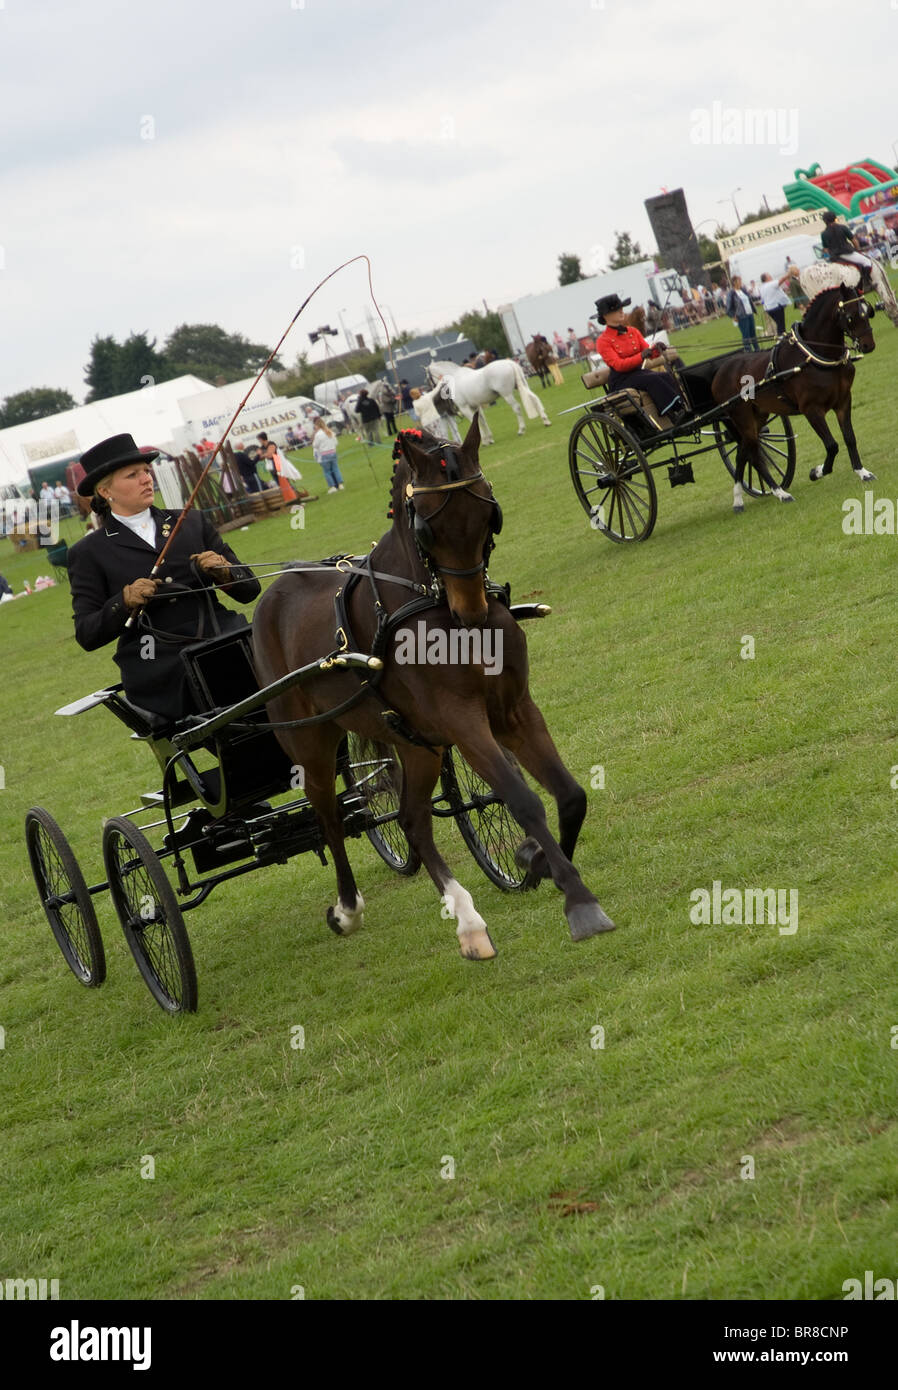 hackney carriage ponies at the orsett county show - Stock Image